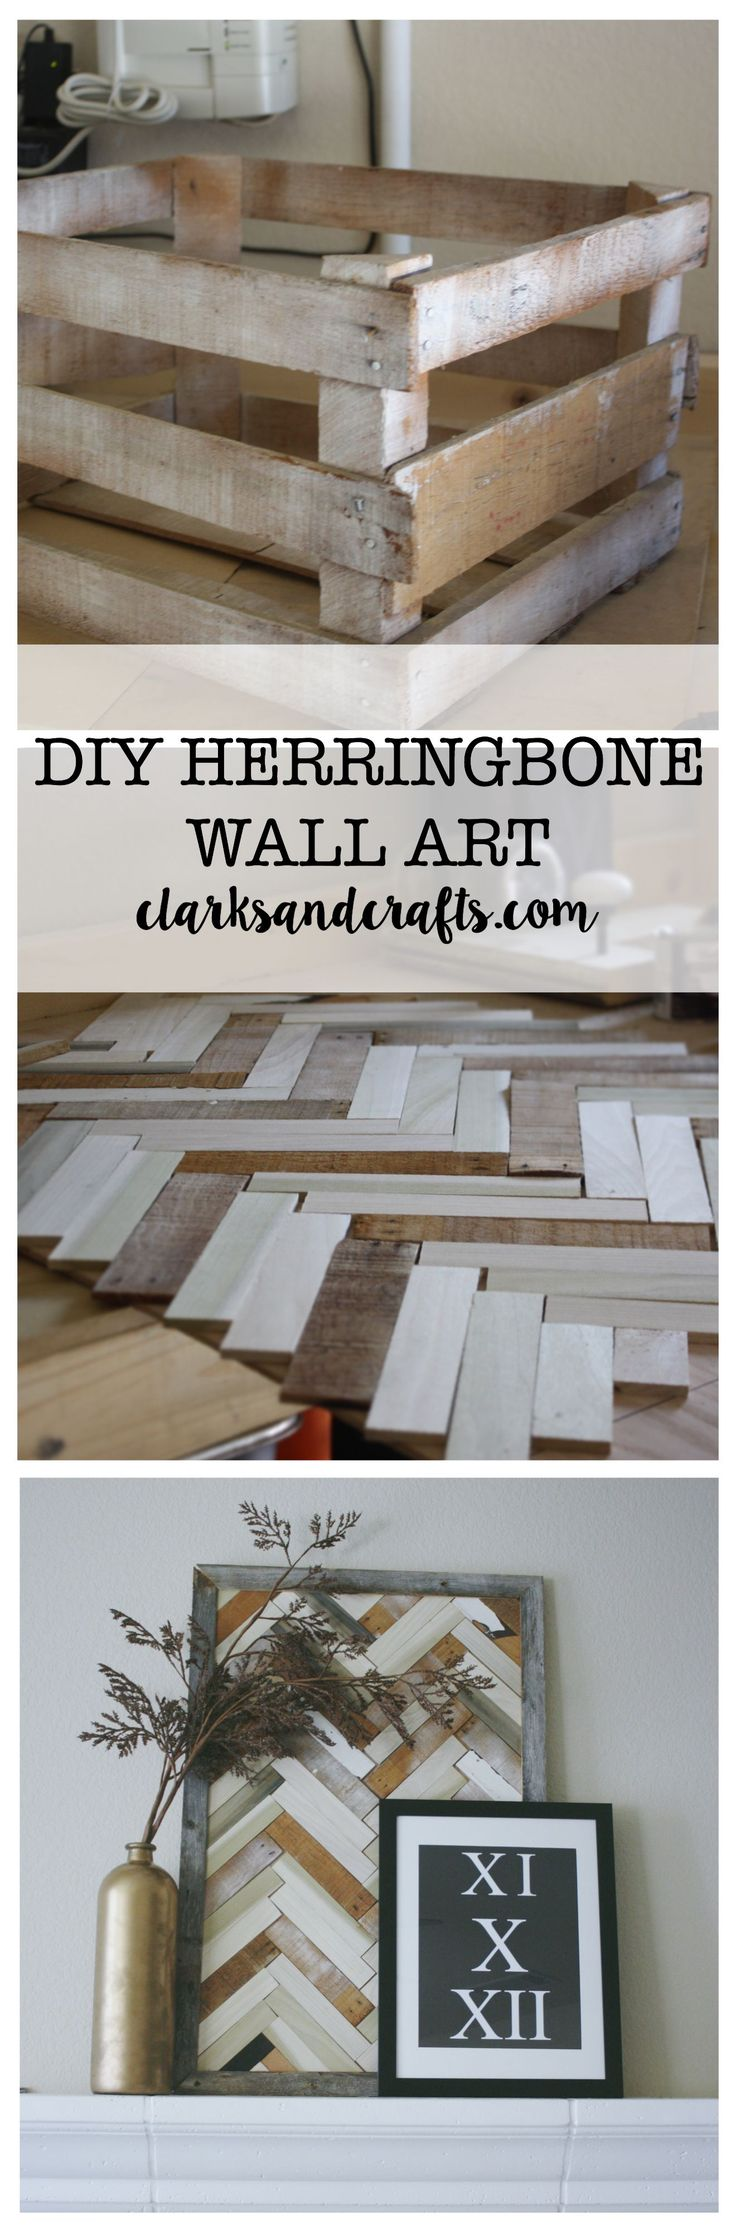 How gorgeous is this wall art we created just over the weekend with almost all reclaimed wood! Some from some old crates we had and some straight from home depot! I am so excited to share this one with you guys it was so simple yet it is such a beautiful rustic statement piece! So let me...